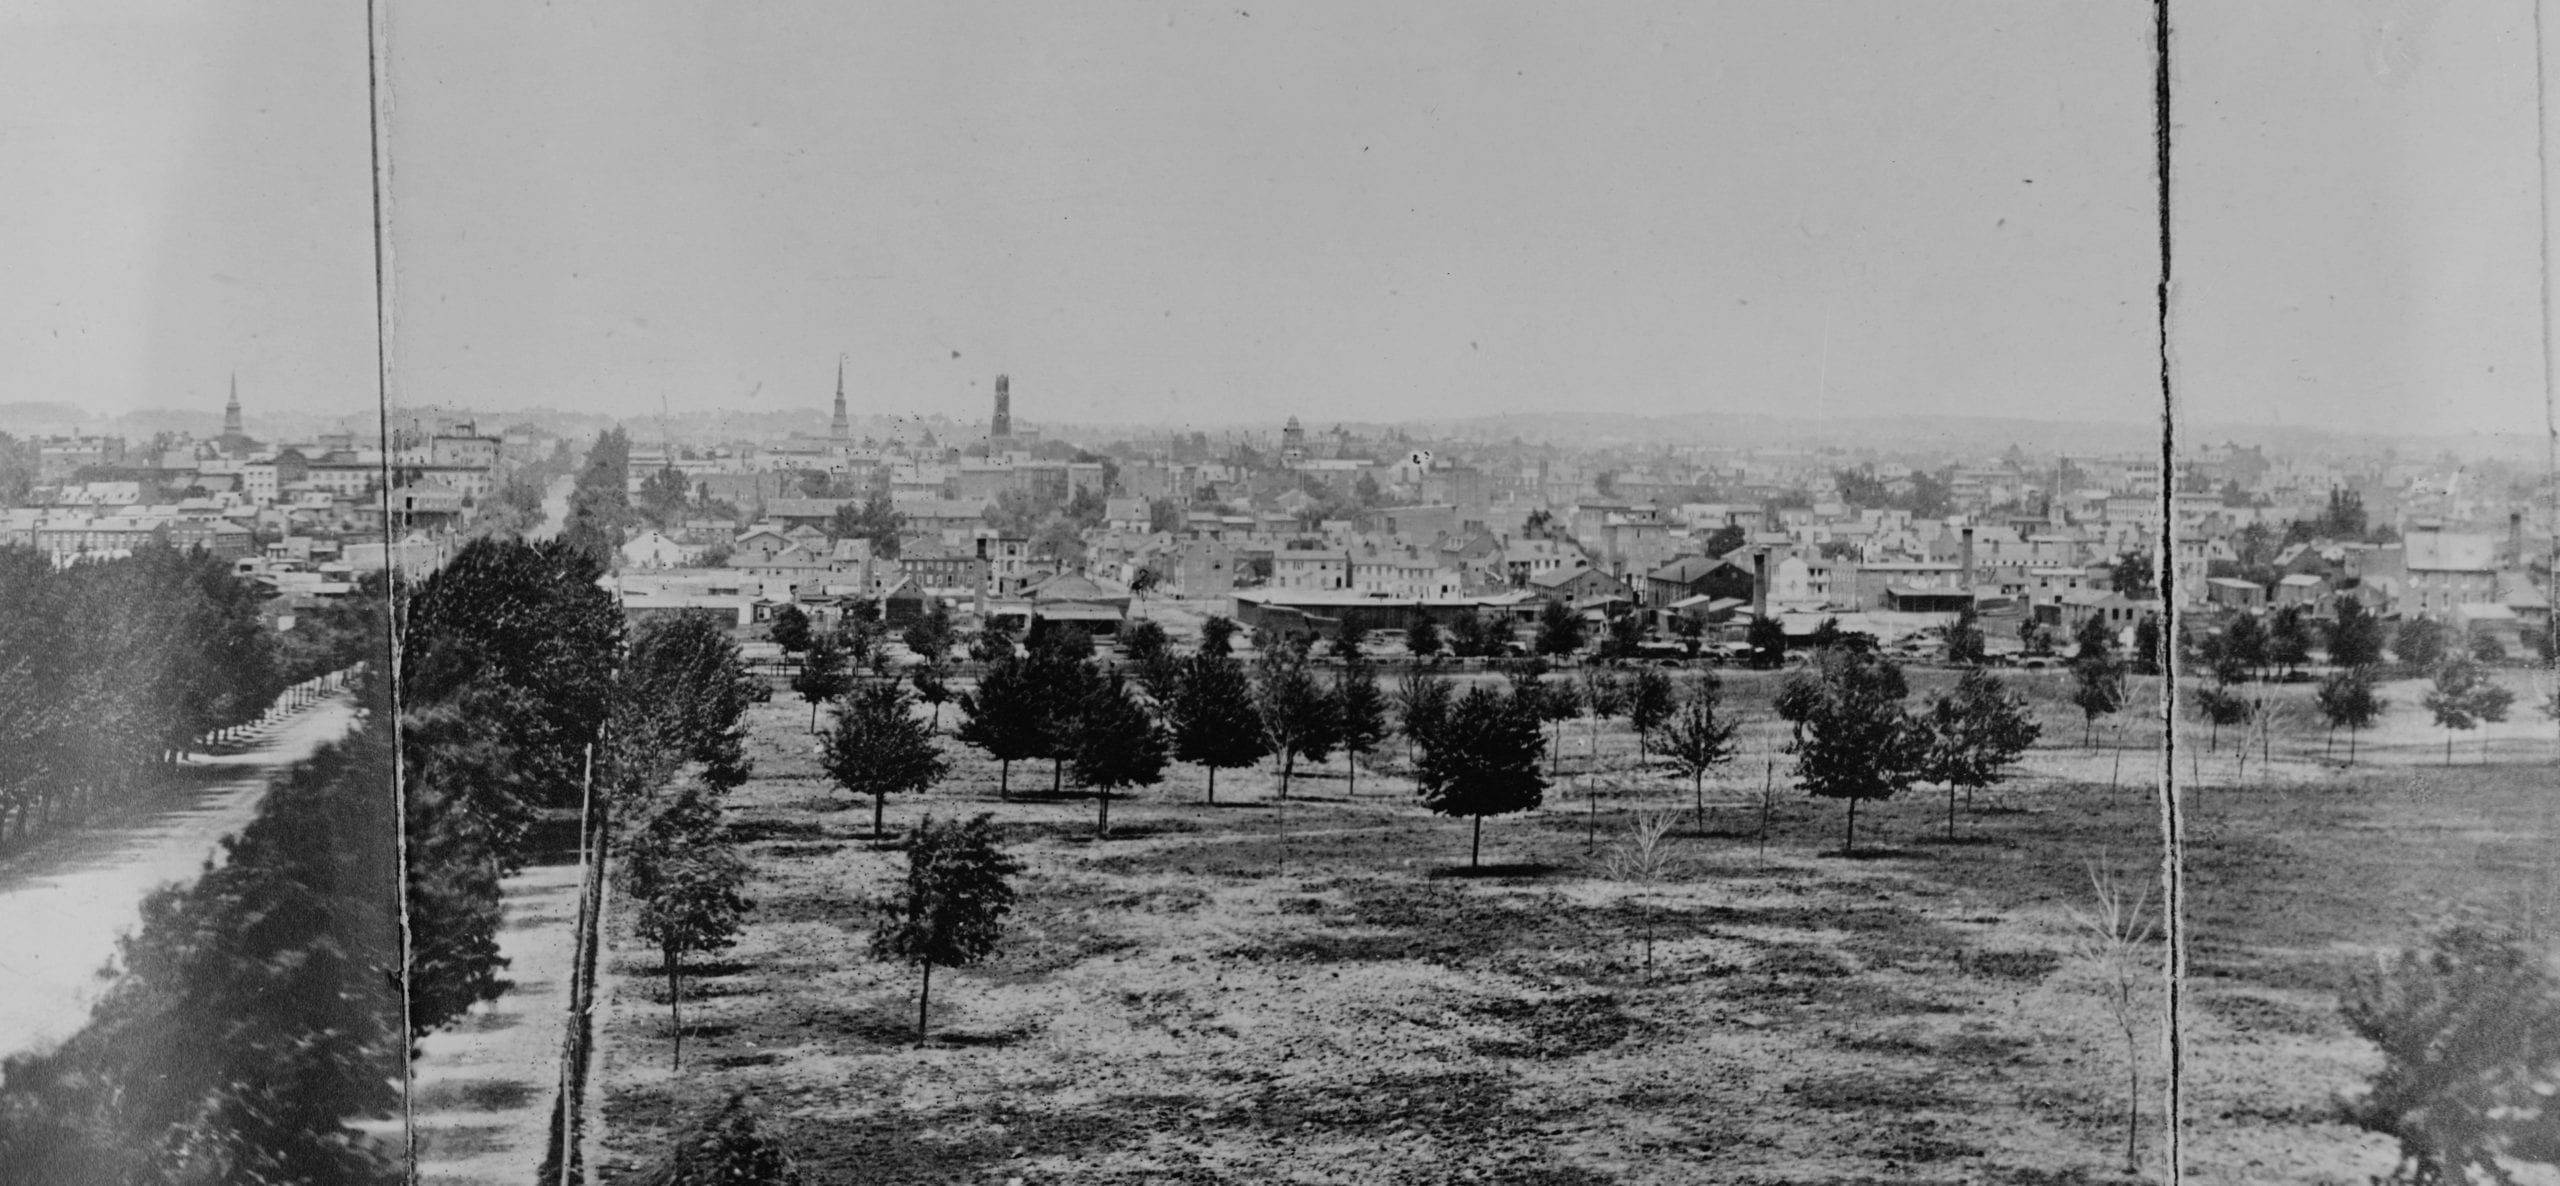 panoramic view of Washington, D.C. in 1865